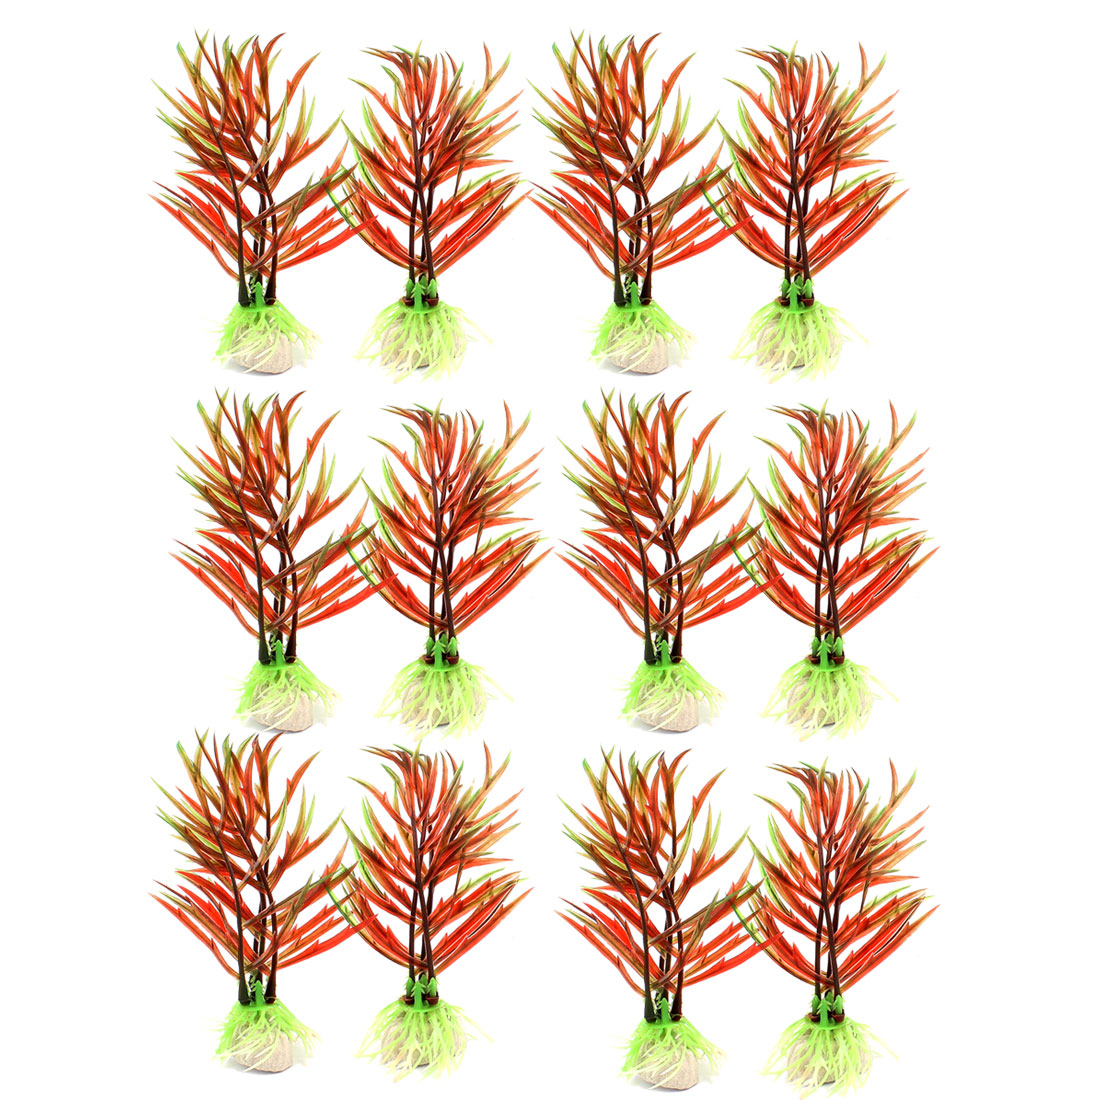 Plastic Manmade Plant Underwater Fish Tank Aquarium Decoration 10PCS